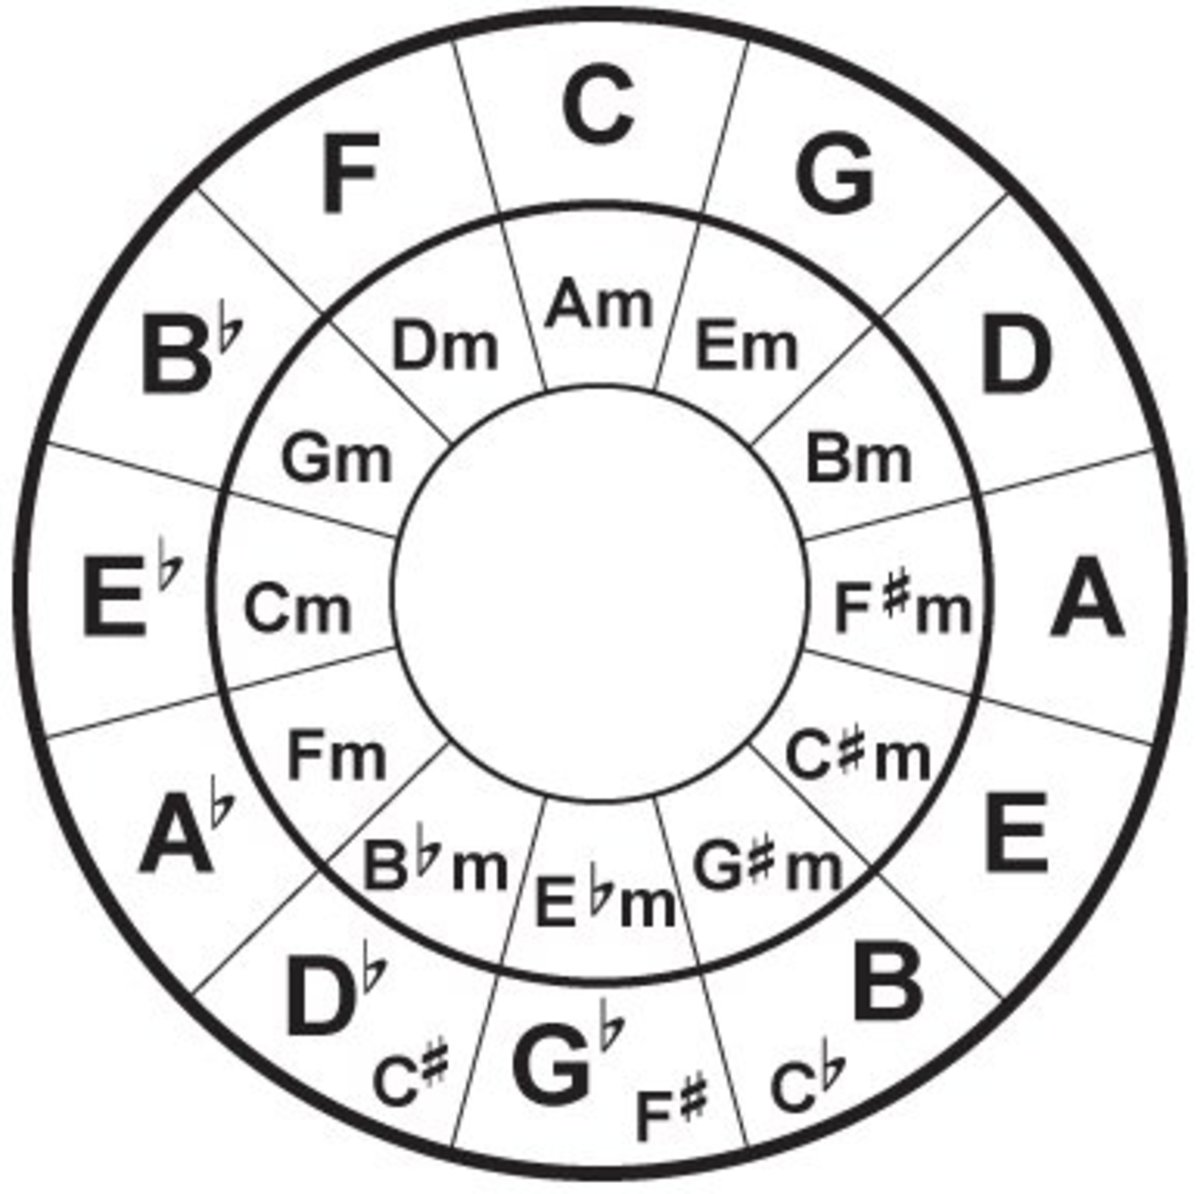 Easy Circle of Fifths Chords for RB Spinditty